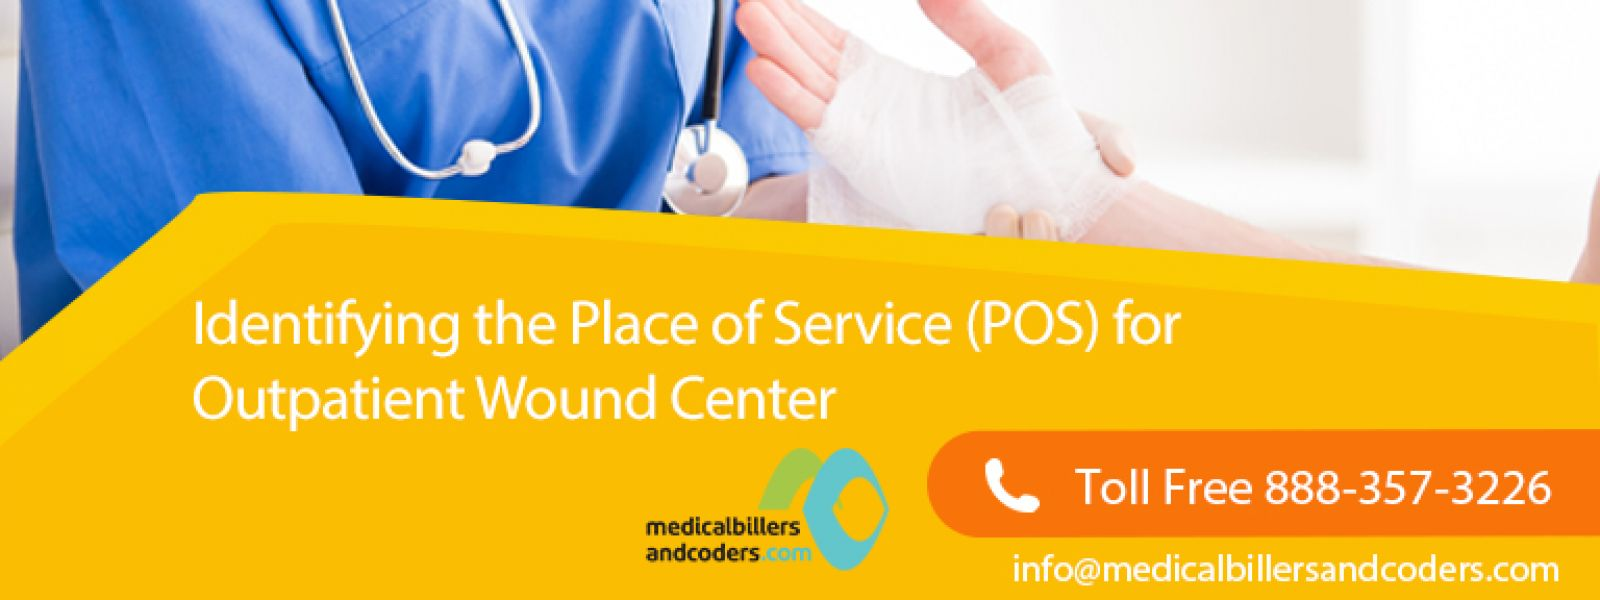 Identifying the Place of Service (POS) for Outpatient Wound Center